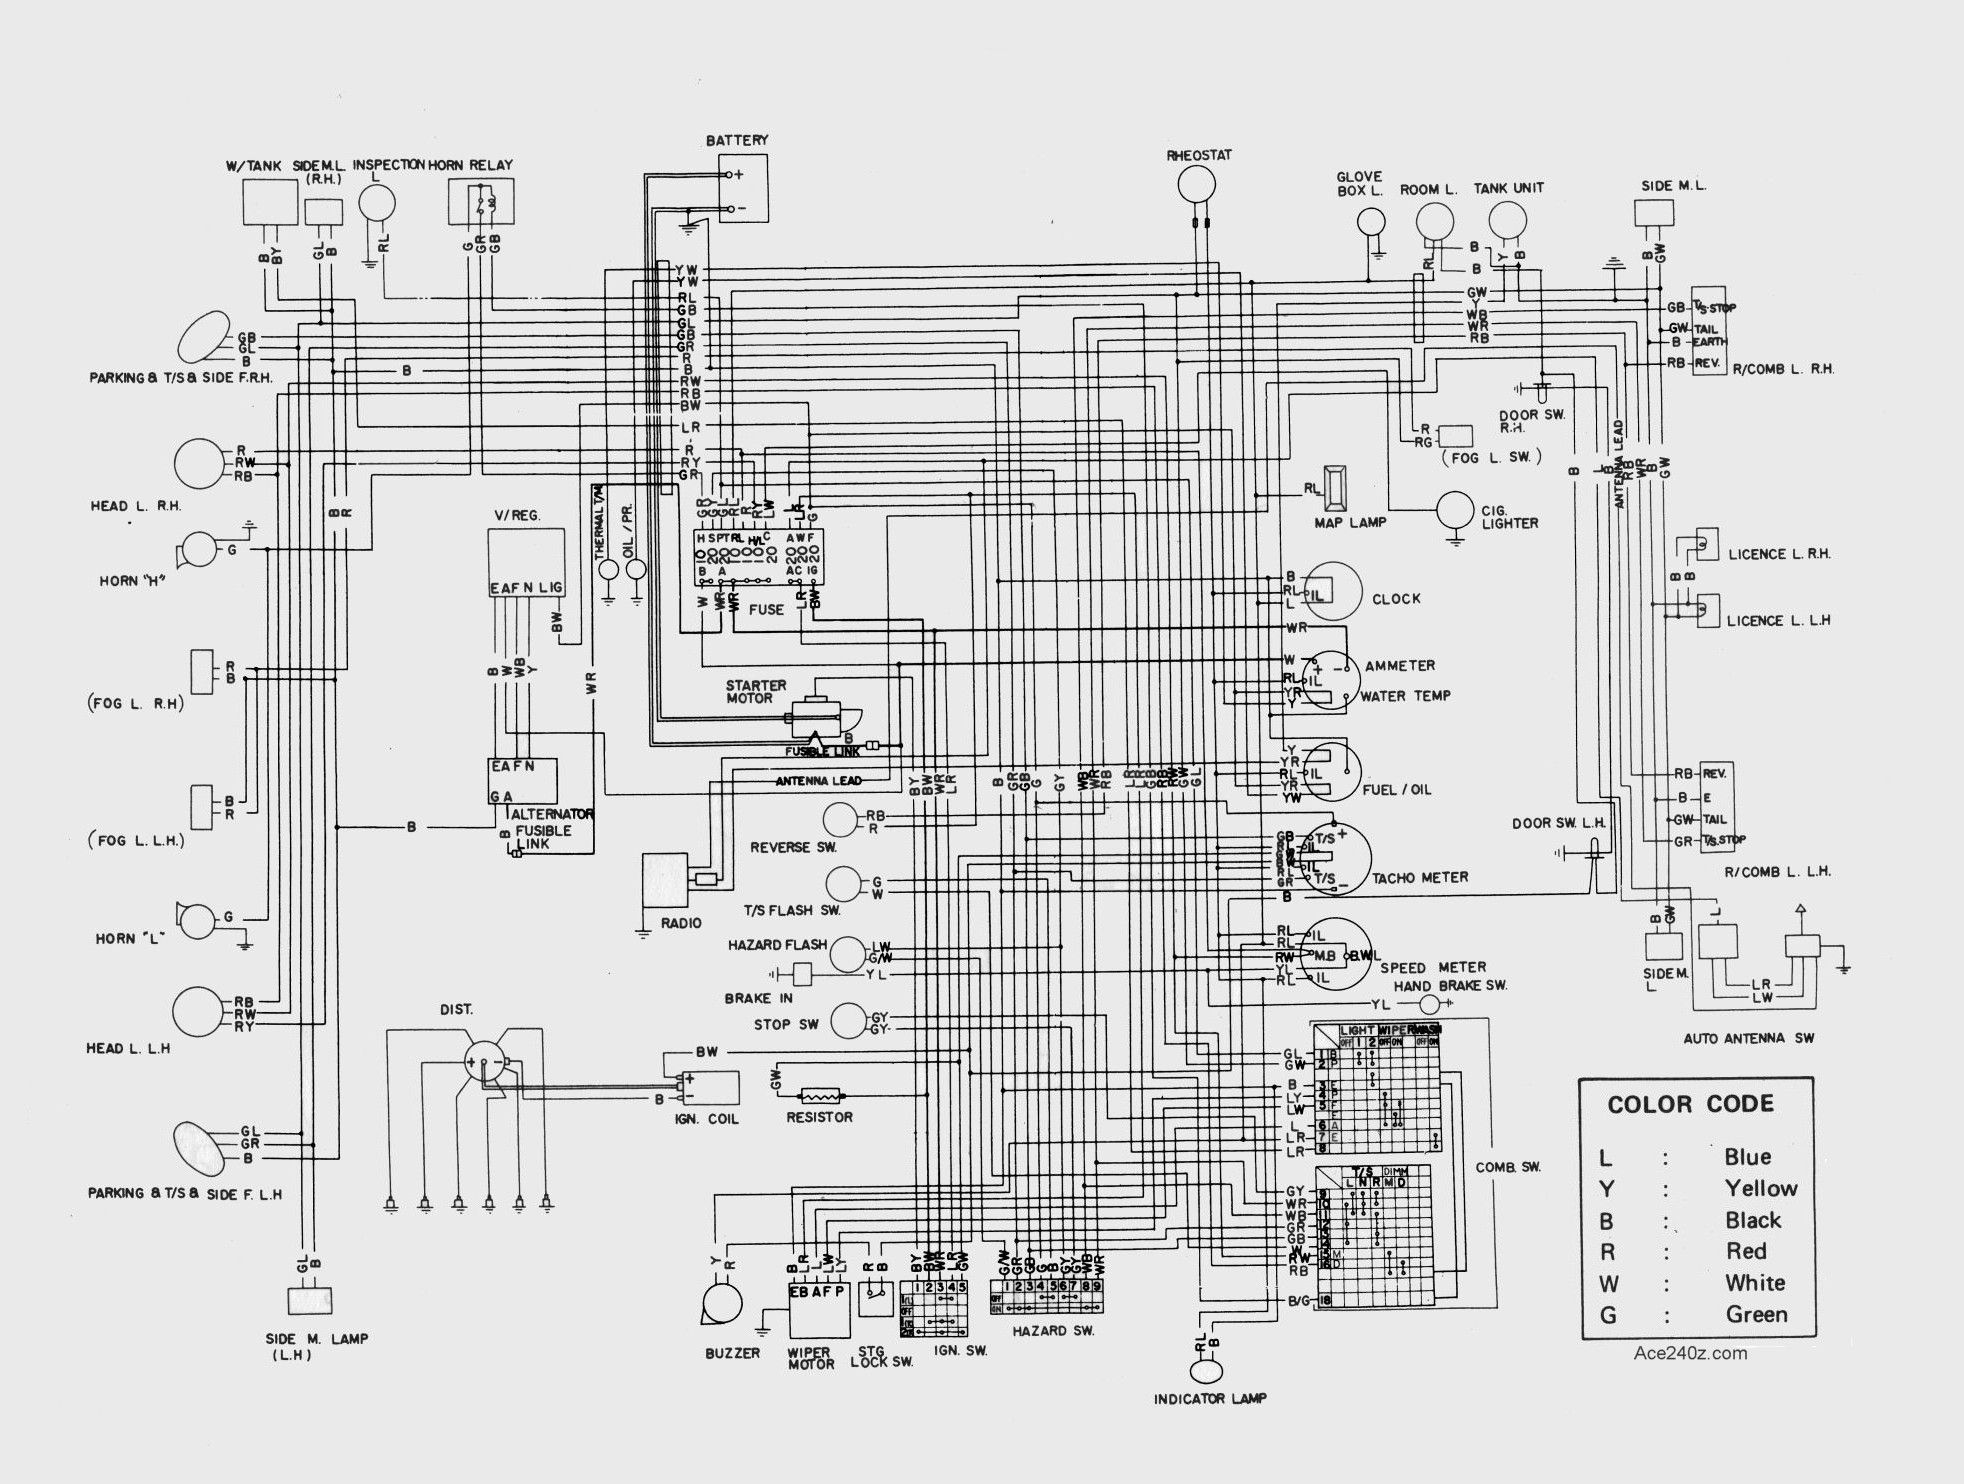 1965 Ford Mustang Wiring Diagram Image Details | Wire